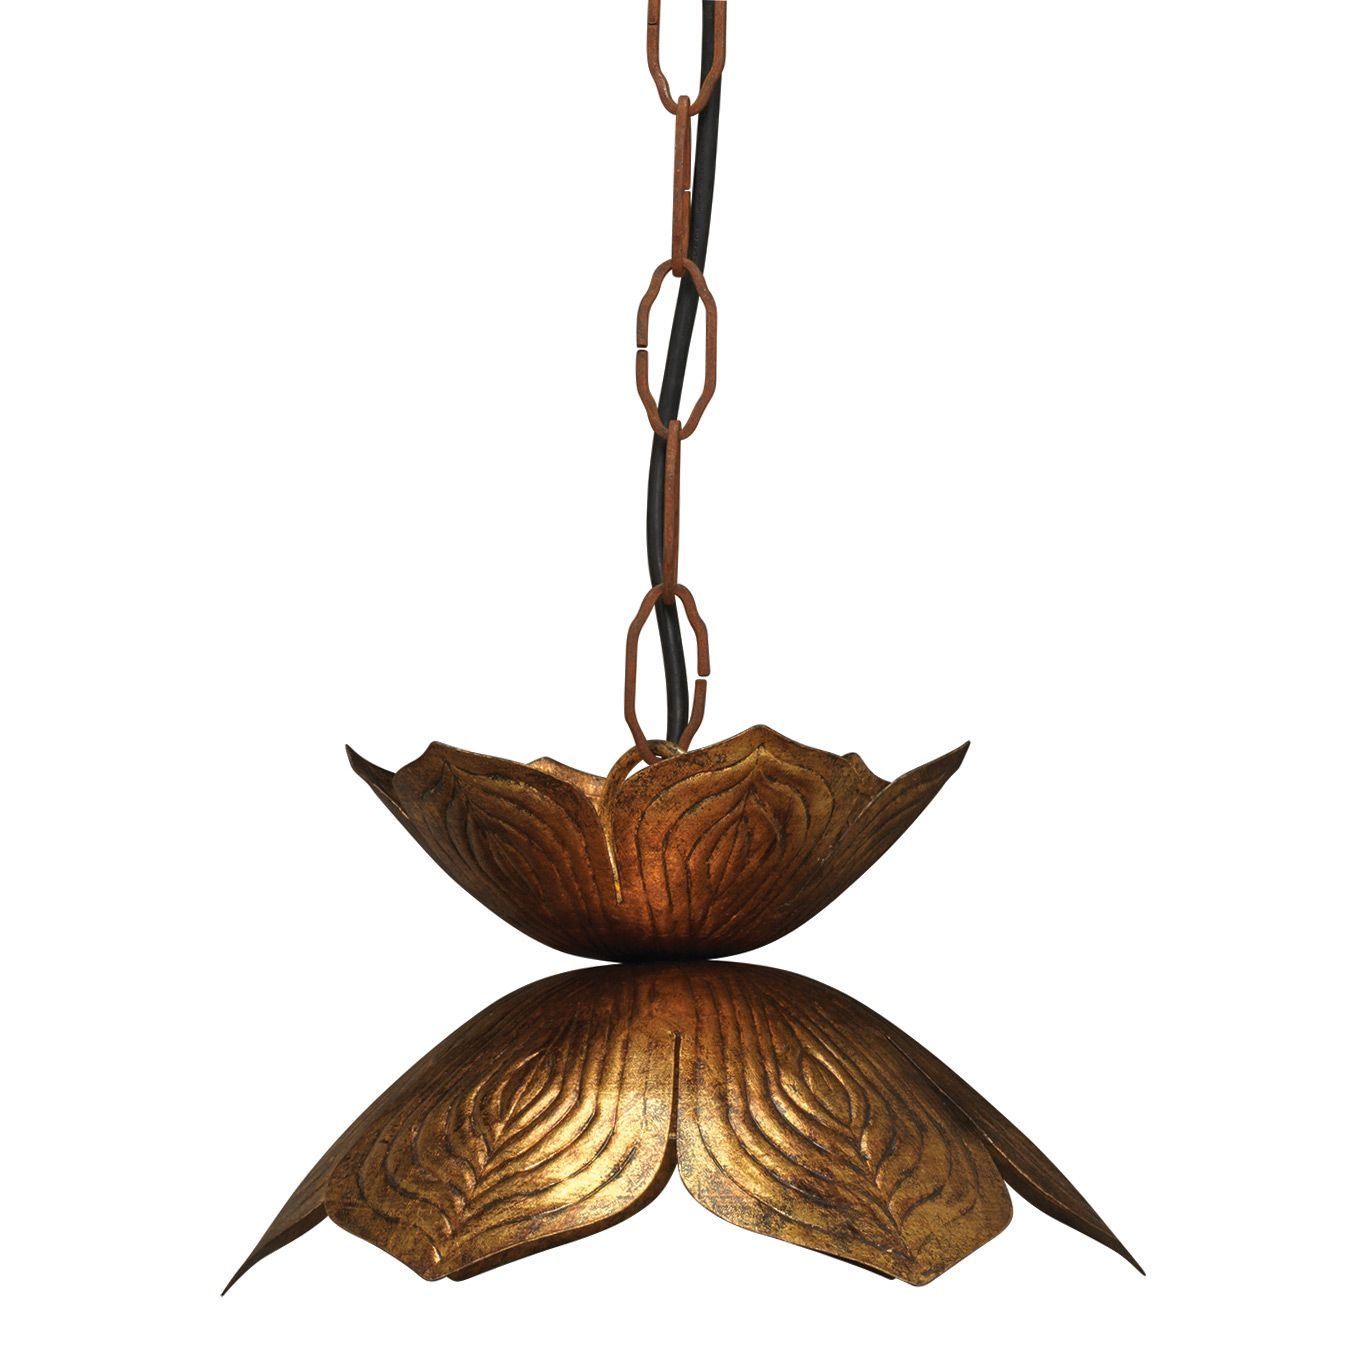 Jamie young lighting pendant flowering lotus small laylagrayce jamie young lighting pendant flowering lotus small laylagrayce jamieyoung aloadofball Image collections